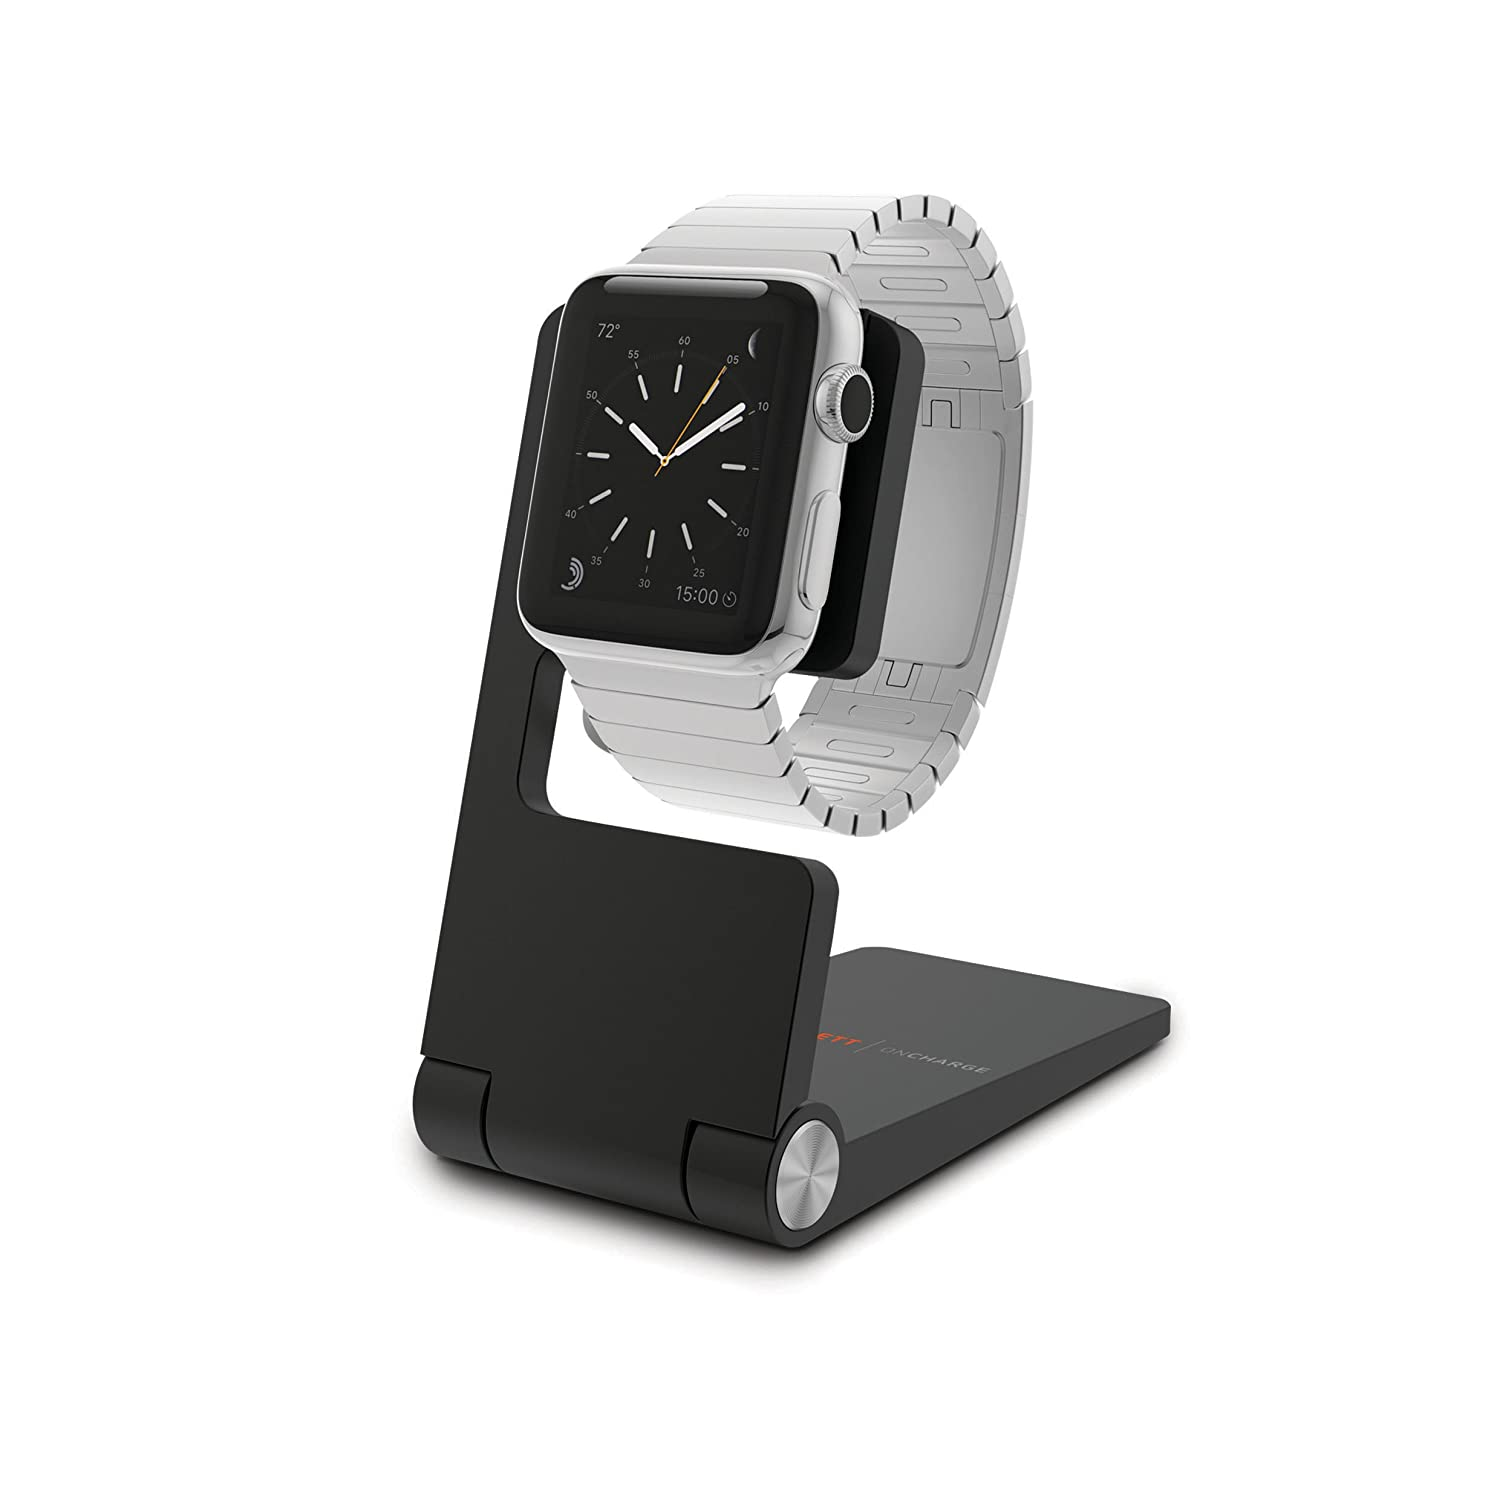 Amazon.com: Cygnett Charger and Cradle for Apple Smartwatch ...